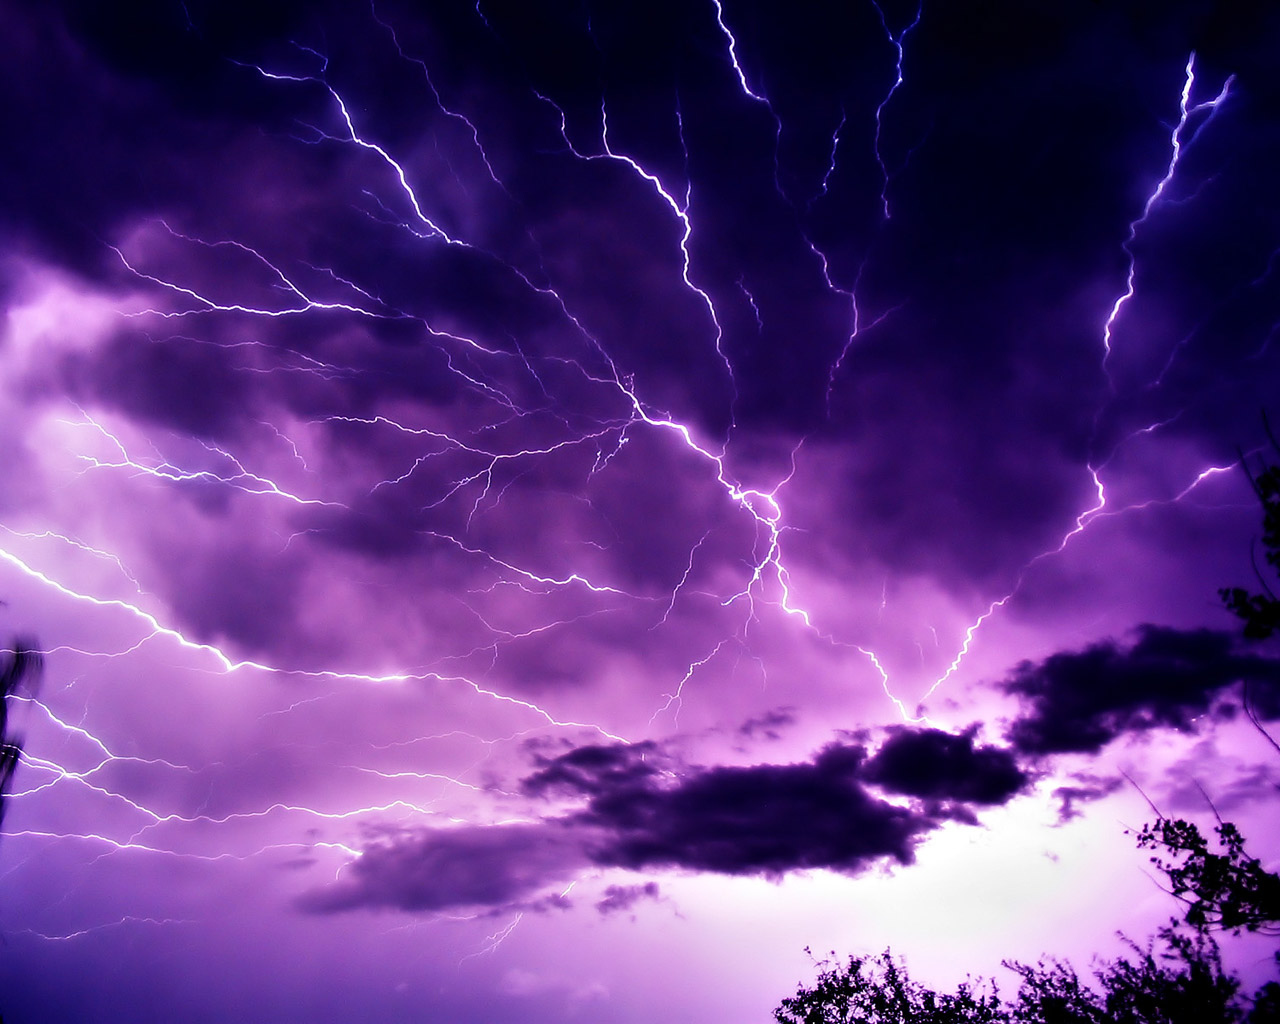 Mauve Sky with Lightning